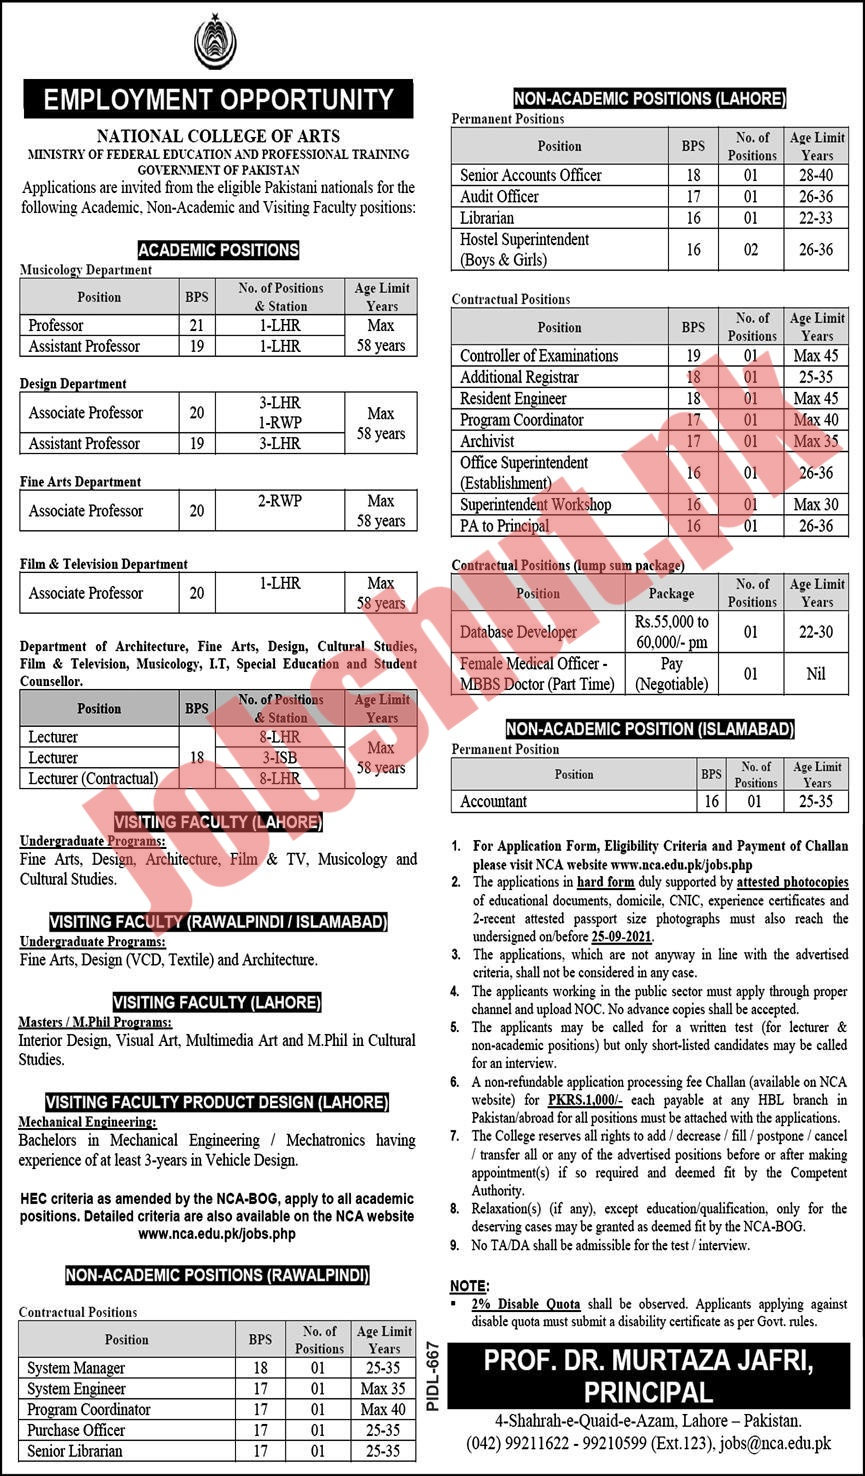 Ministry Of Federal Education and Professional Training jobs advertisement